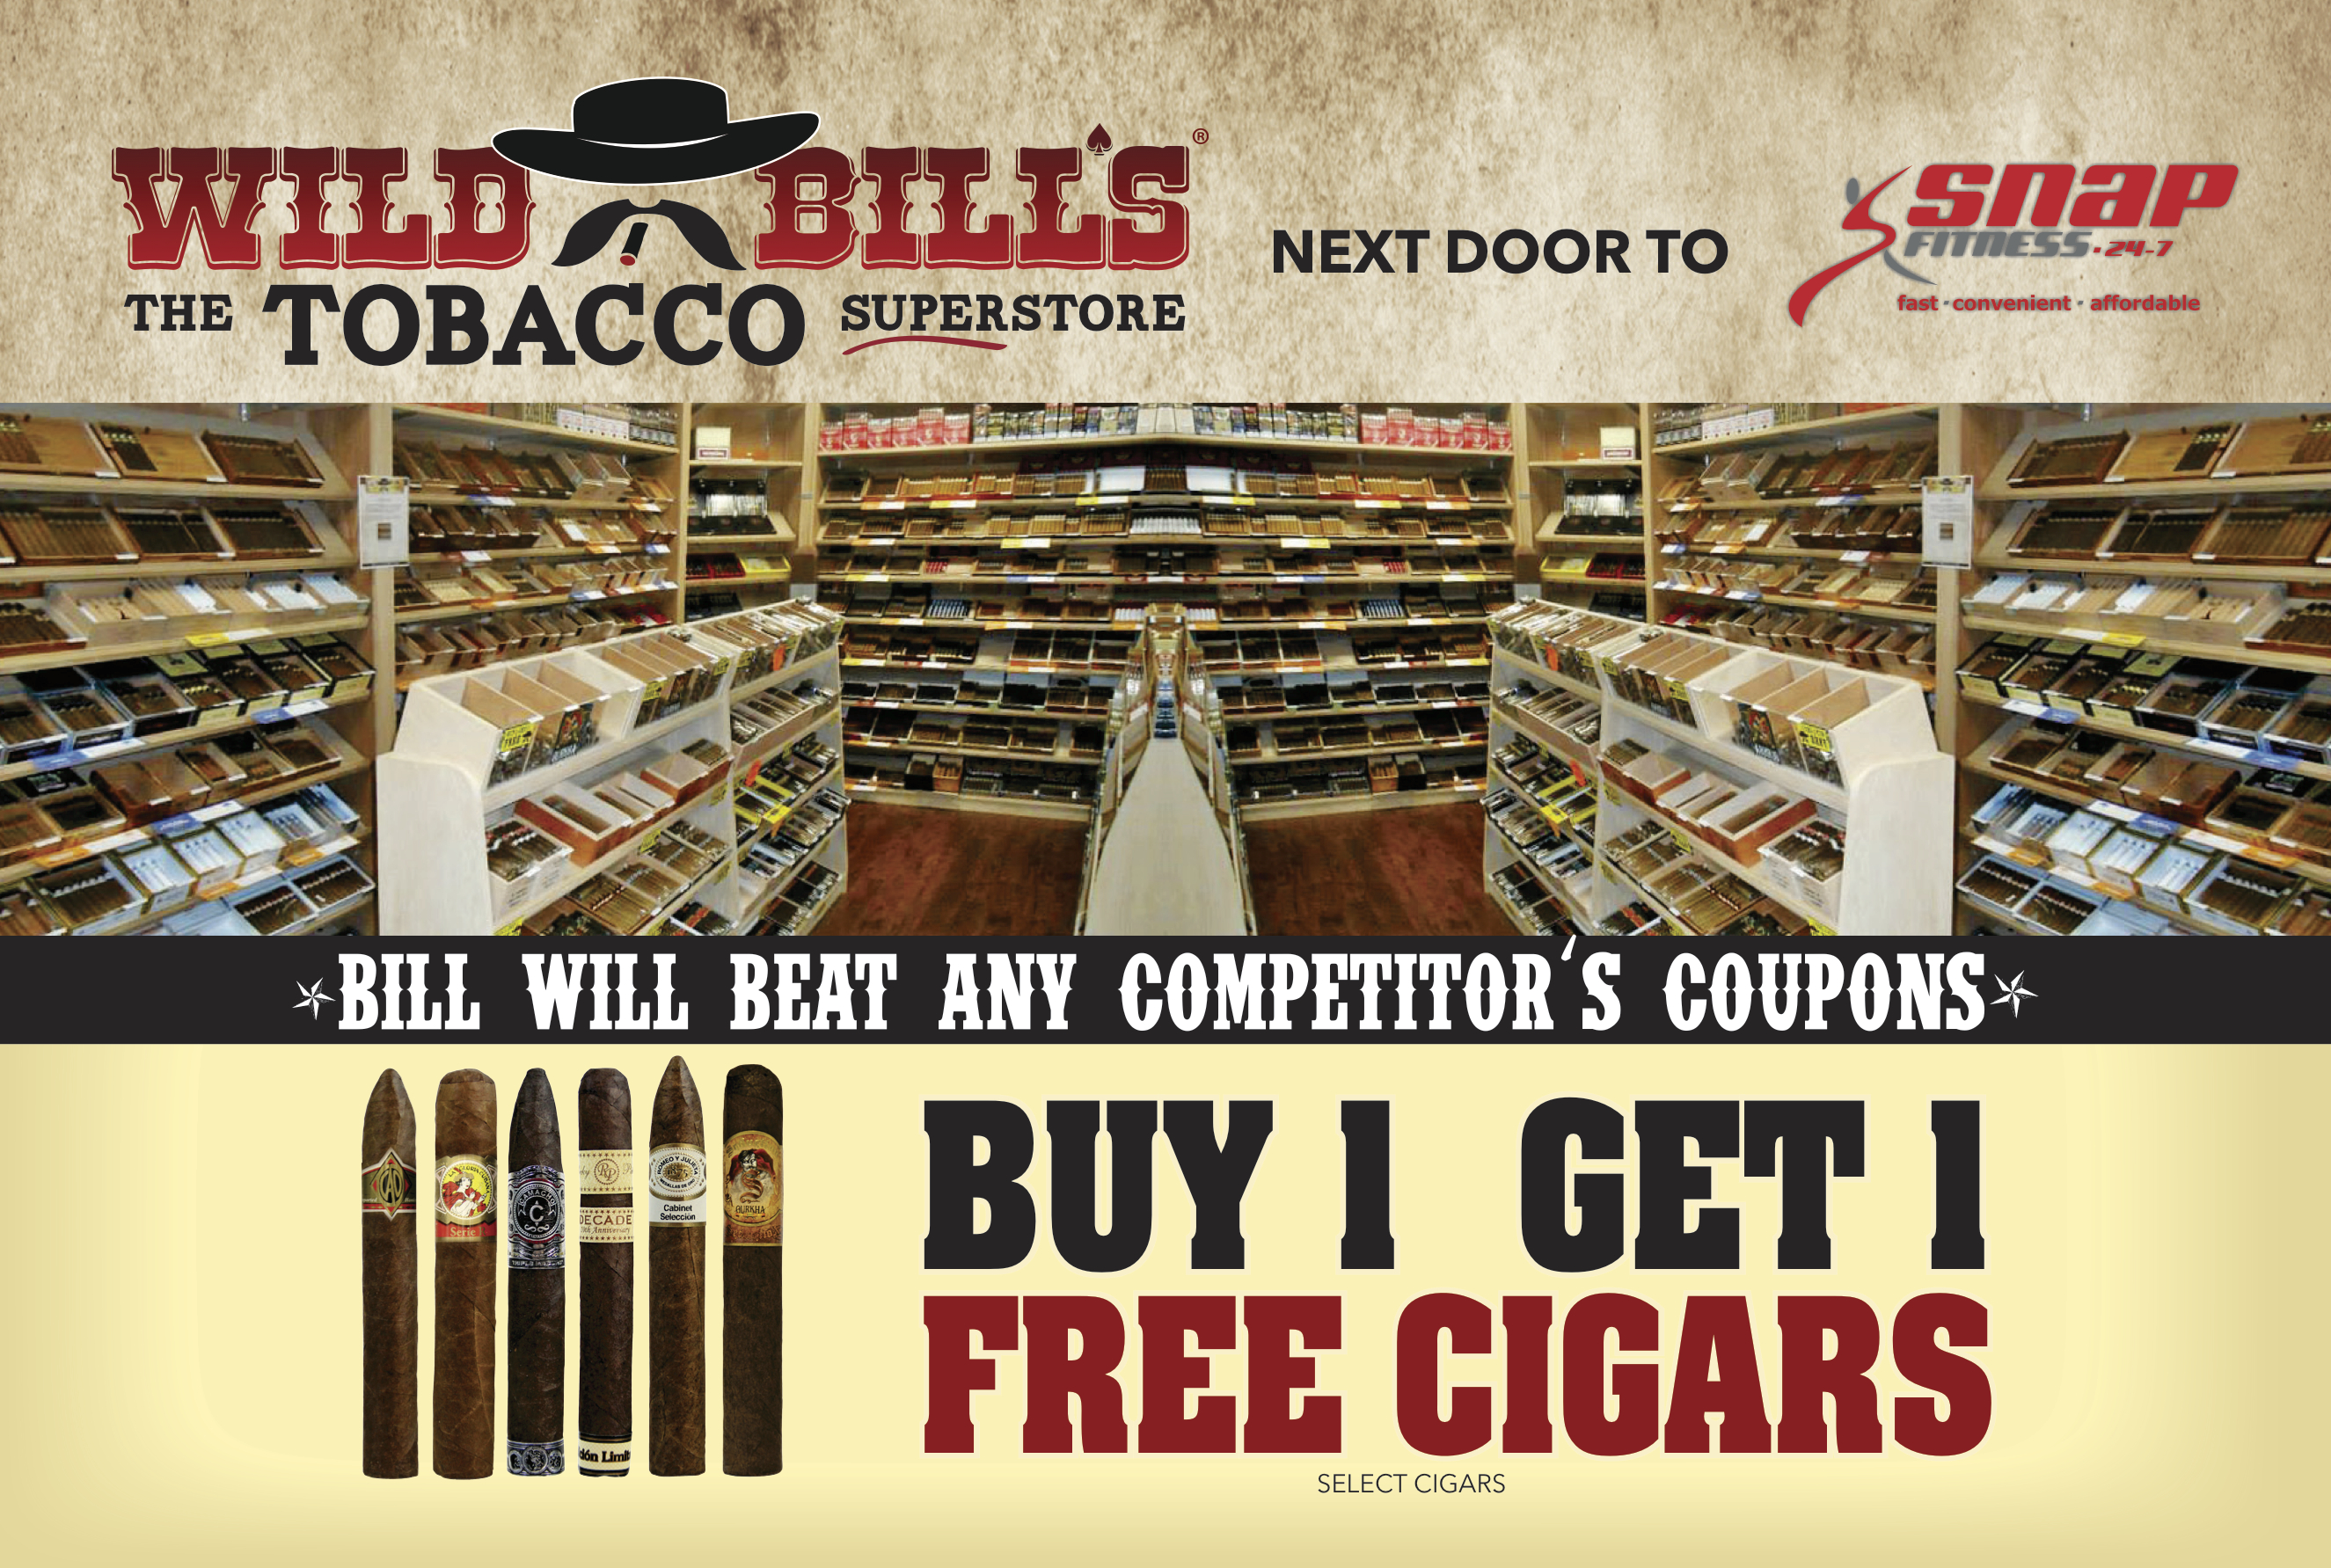 wild bills tobacco, harrison township